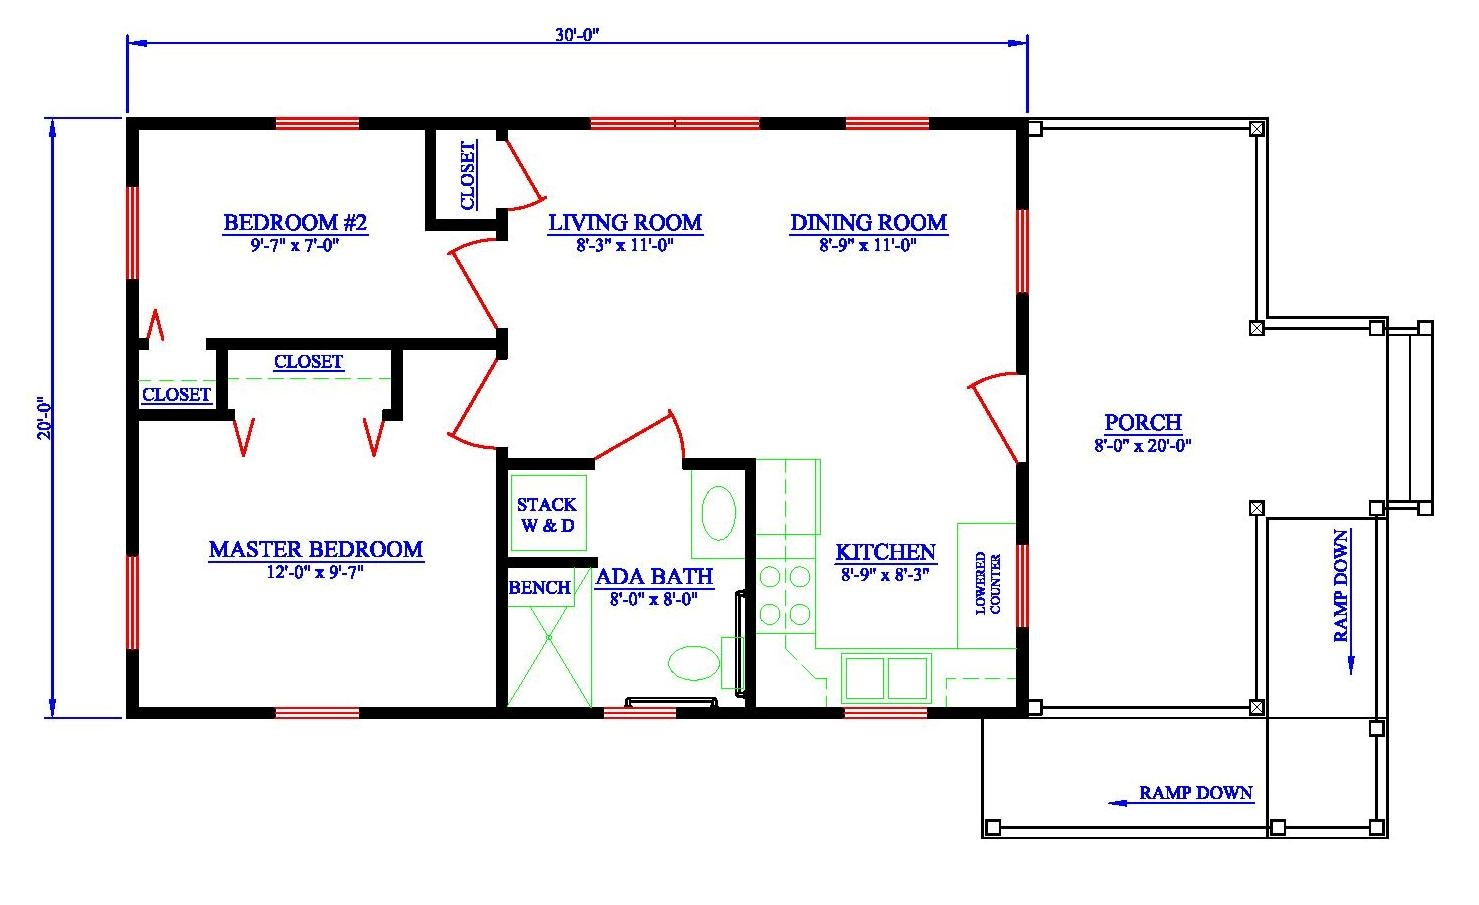 House plans handicap accessible house plan 2017 for Wheelchair accessible house plans with elevator